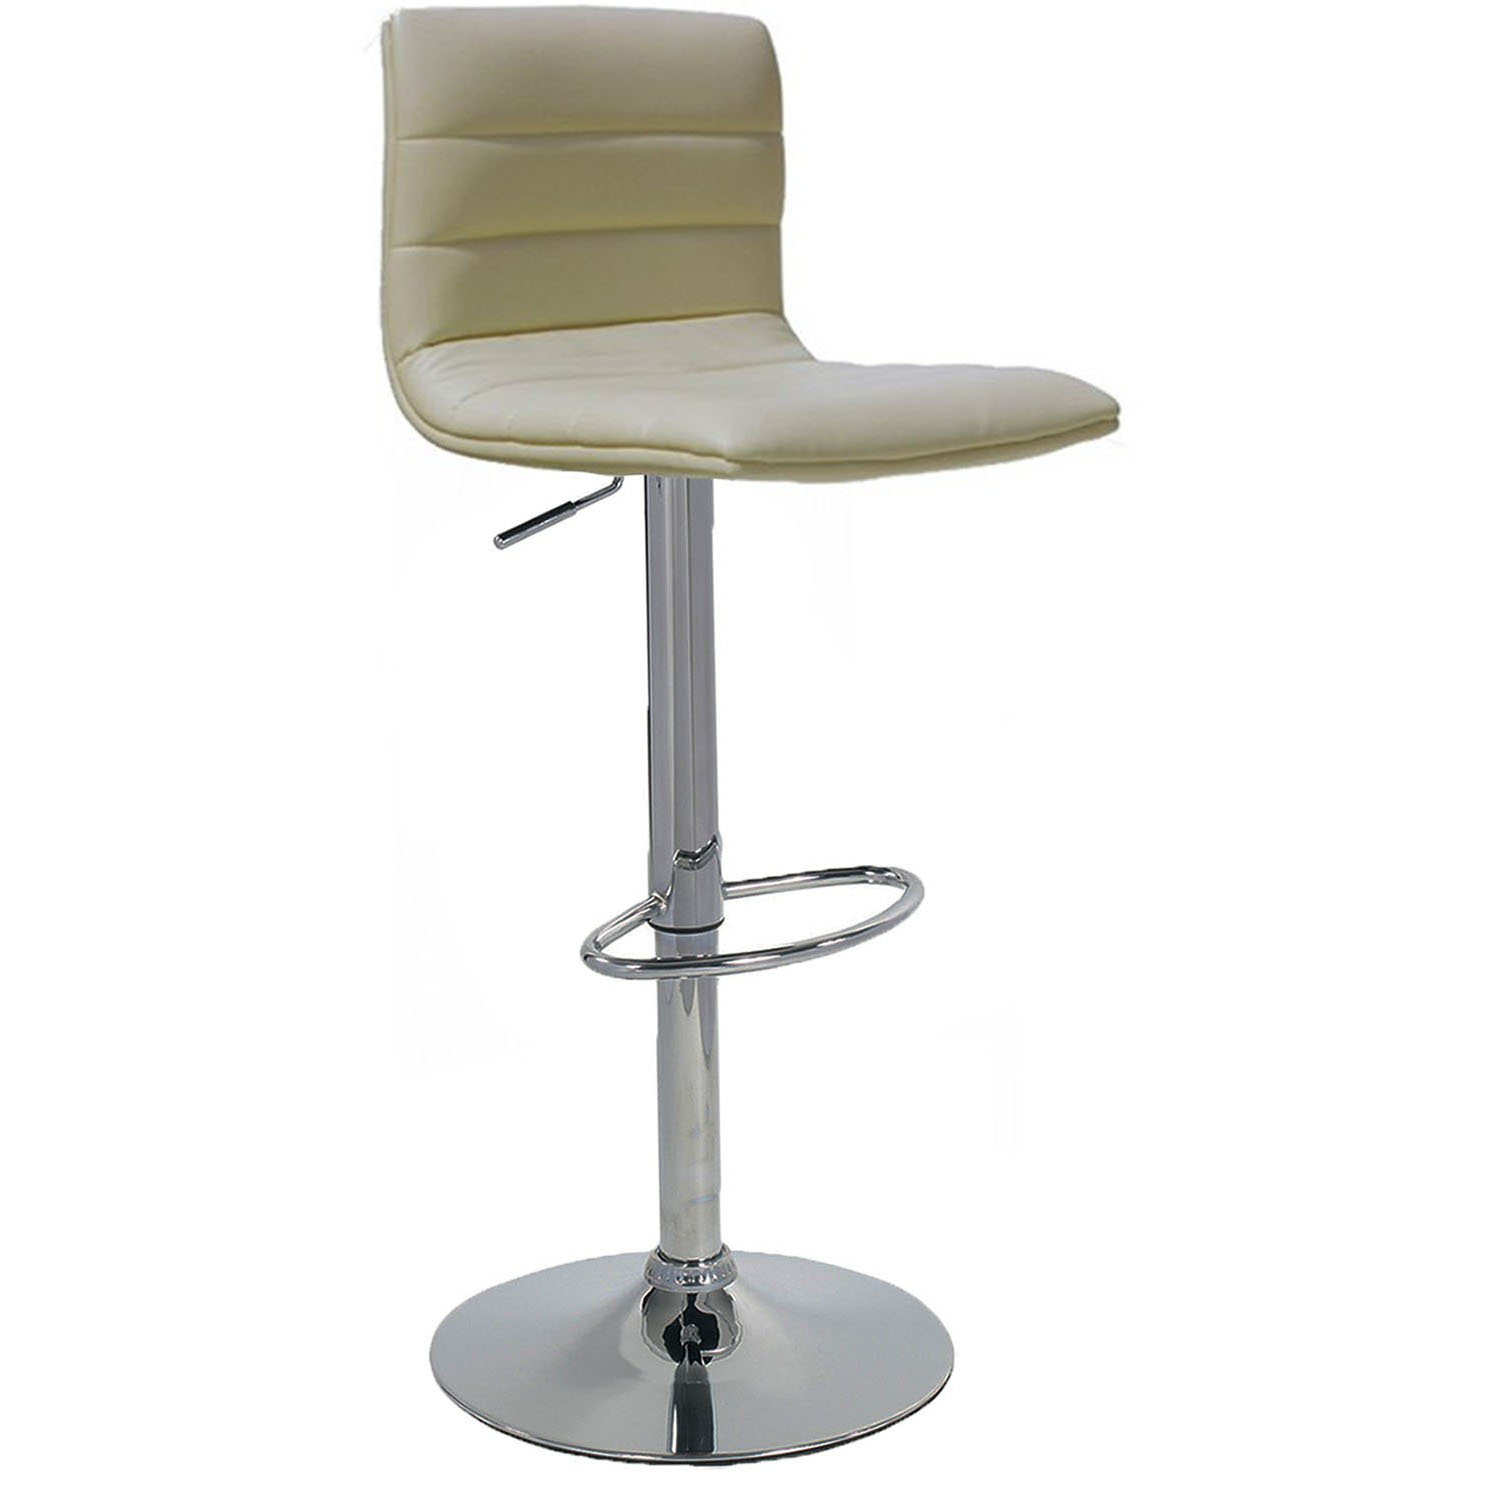 Aldo Bar Stool - Cream